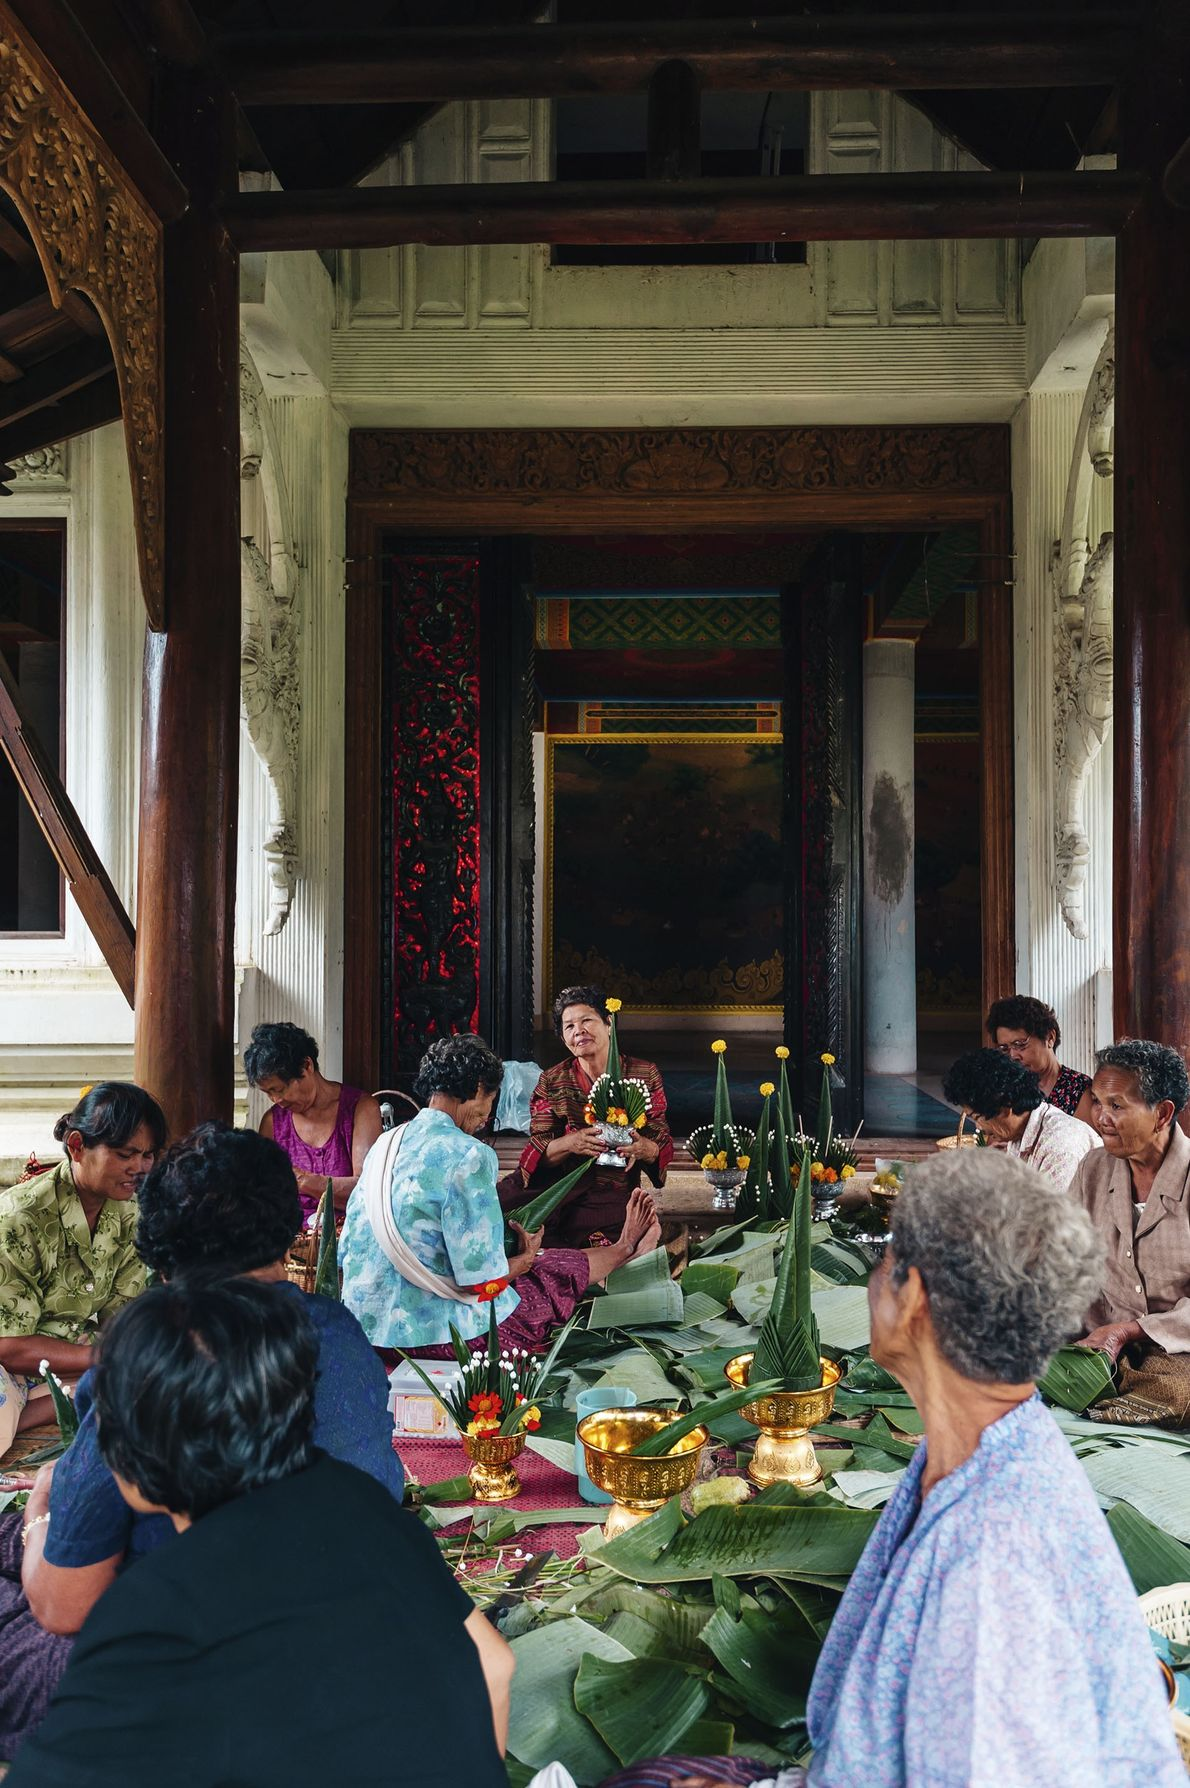 On religious days, villagers gather at the local temple where teams of celebrants clean, cook communal ...